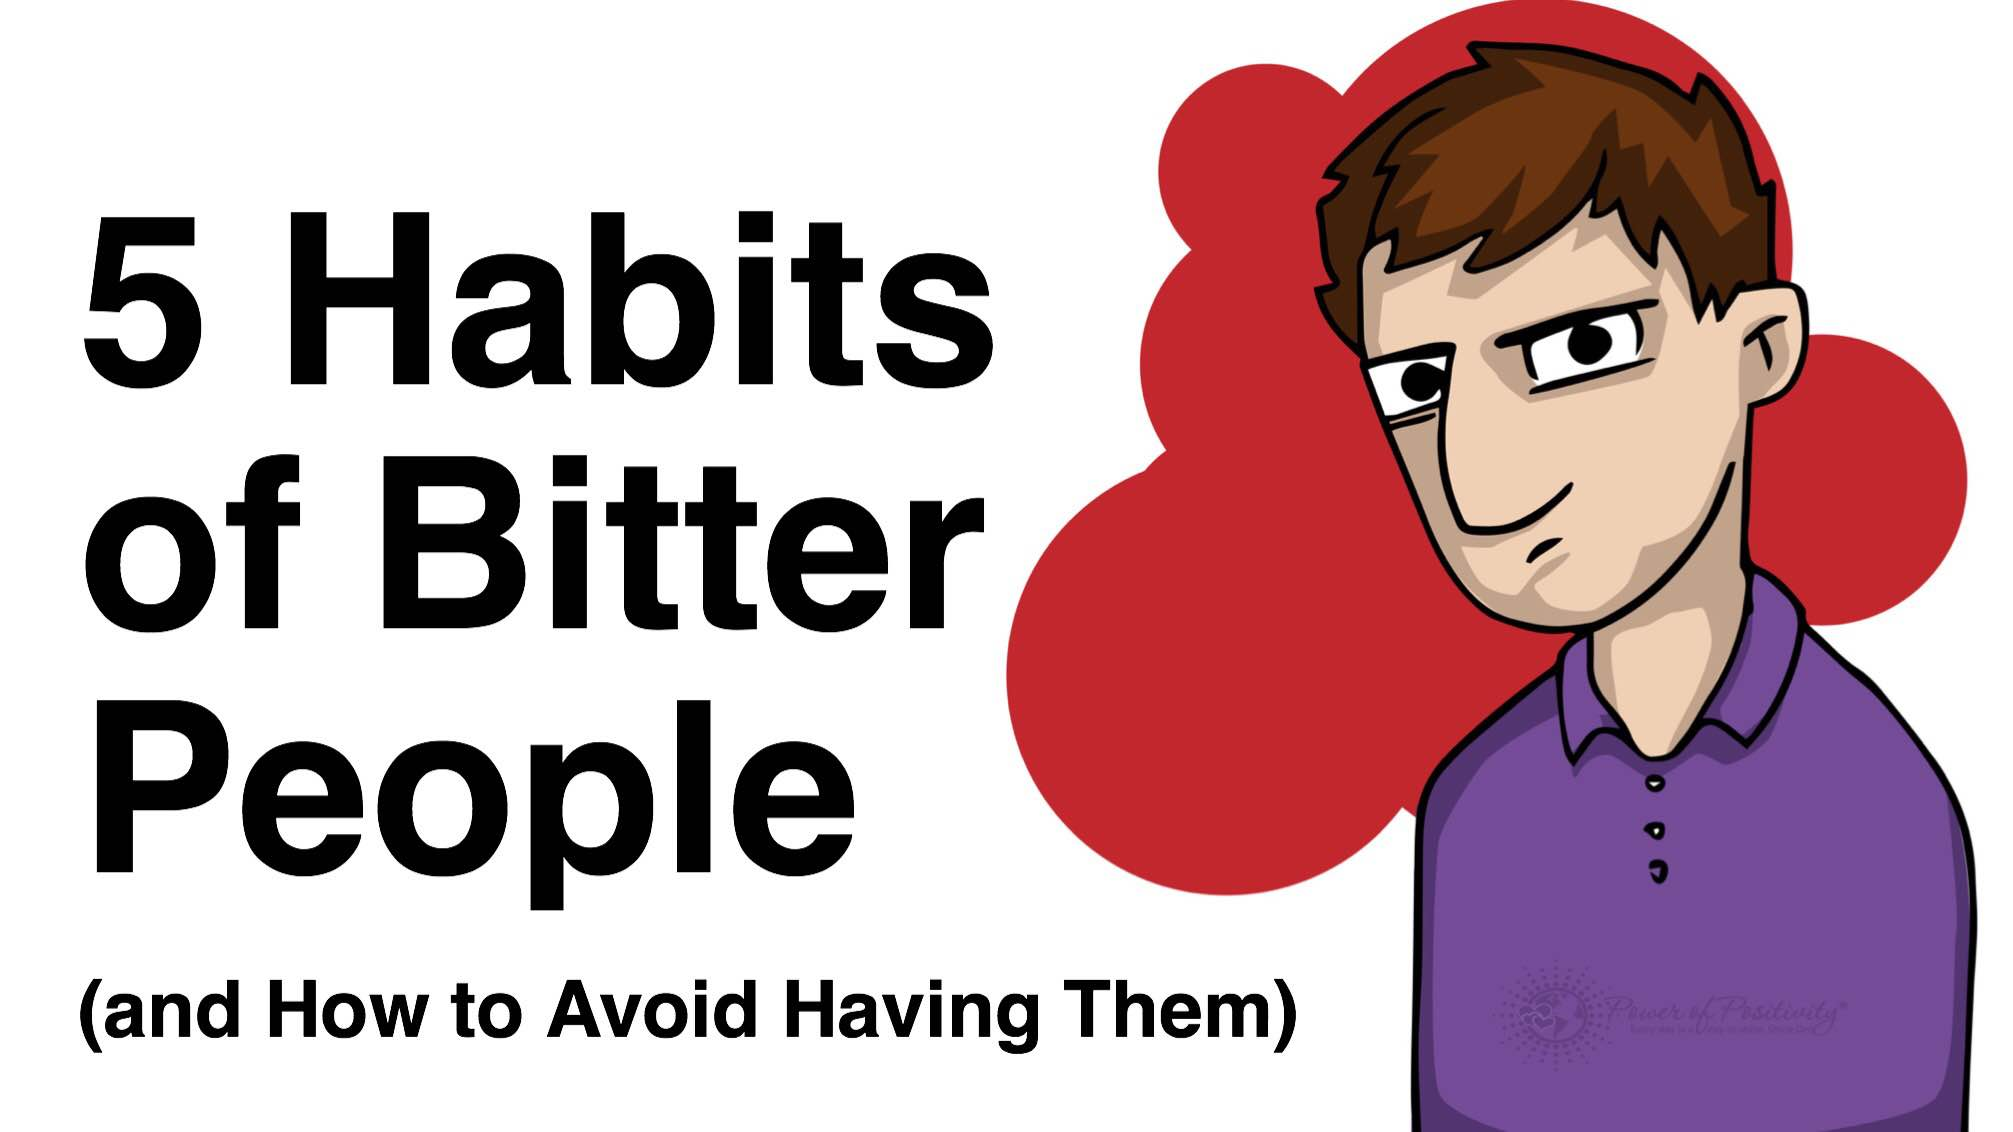 5 Habits of Bitter People (and How to Avoid Having Them